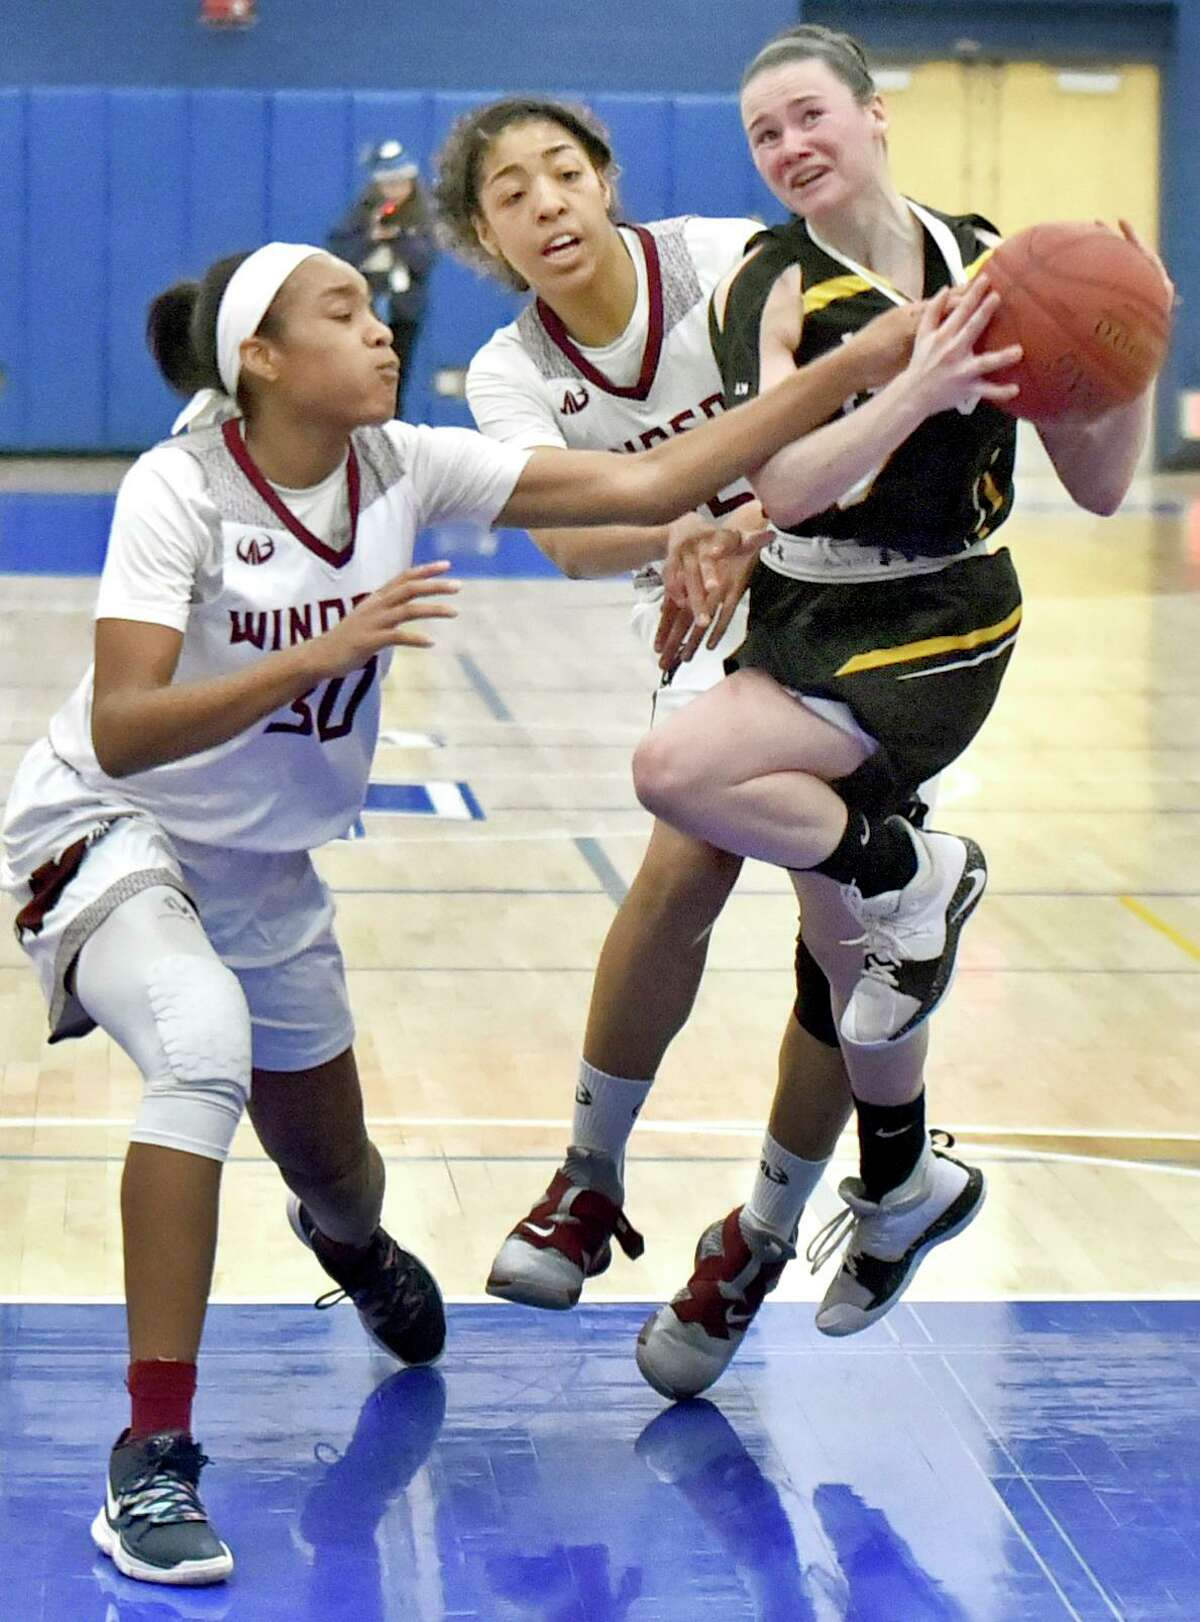 Azure Riley, left, and Denise Solis, center, of Windsor, play defense against a driving Sarah Wohlgemuth of Daniel Hand of Madison during the fourth quarter of the CIAC State girls basketball tournament semifinal game last season at Plainville High School. Hand defeated Windsor 33-27.